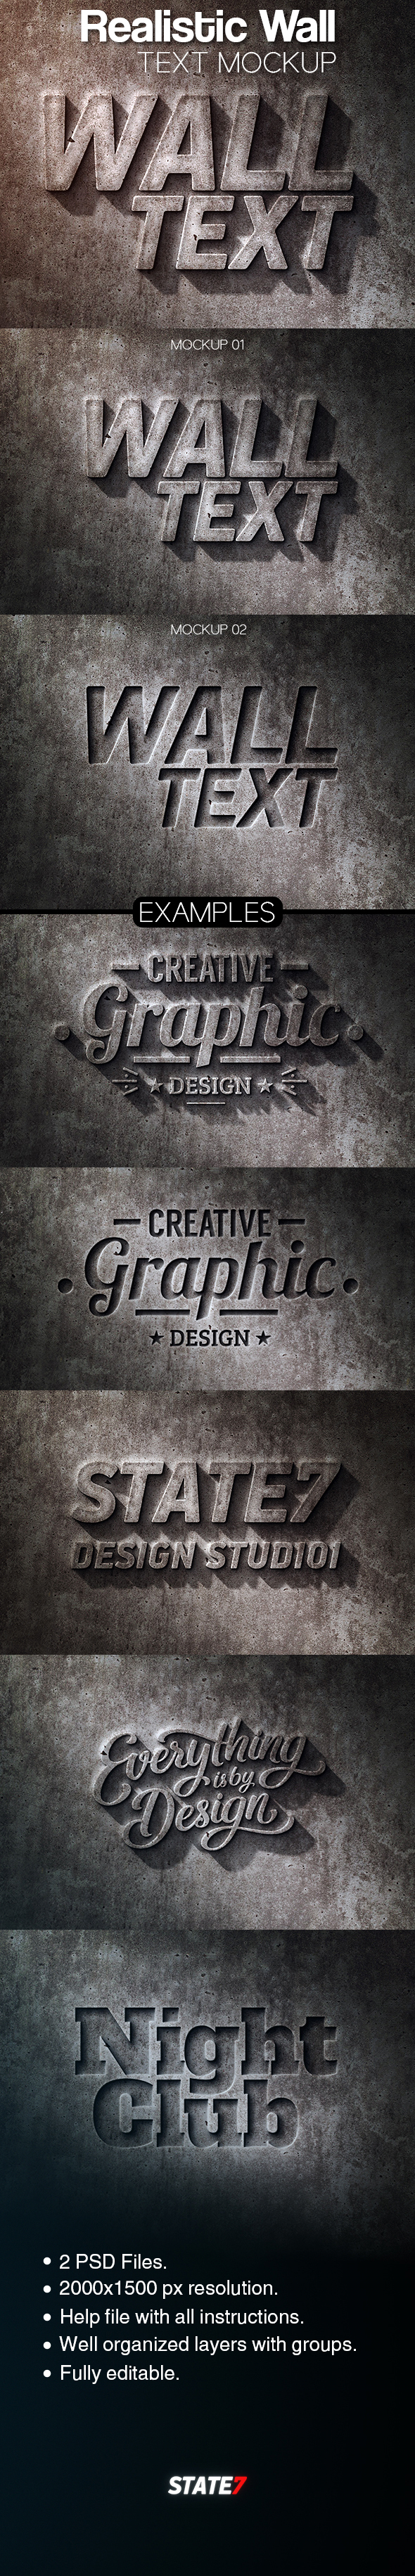 Realistic Wall Text Mockup - Text Effects Actions